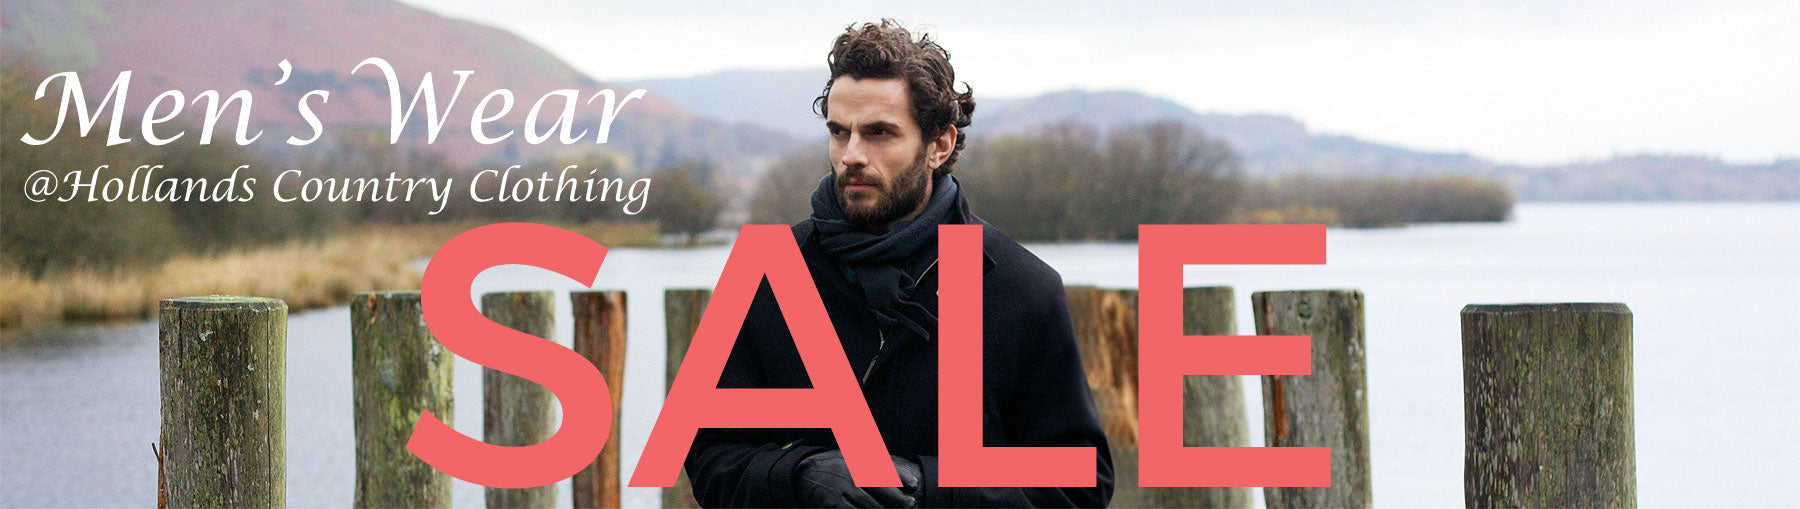 MENS WEAR COUNTRY CLOTHING SALE AT HOLLANDS COUNTRY CLOTHING